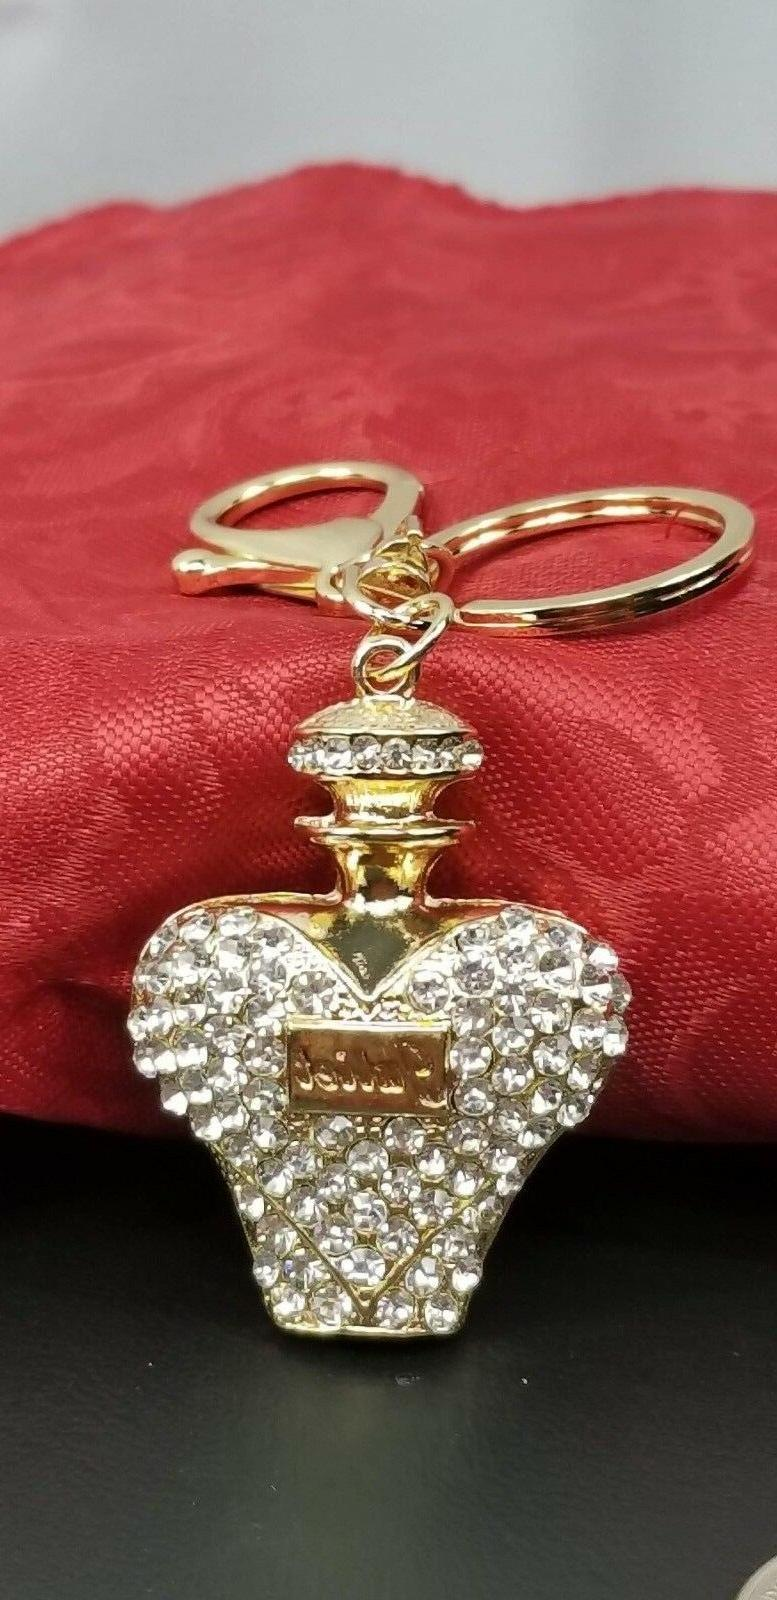 Key handbag chains fashionable accessories for girls accessories